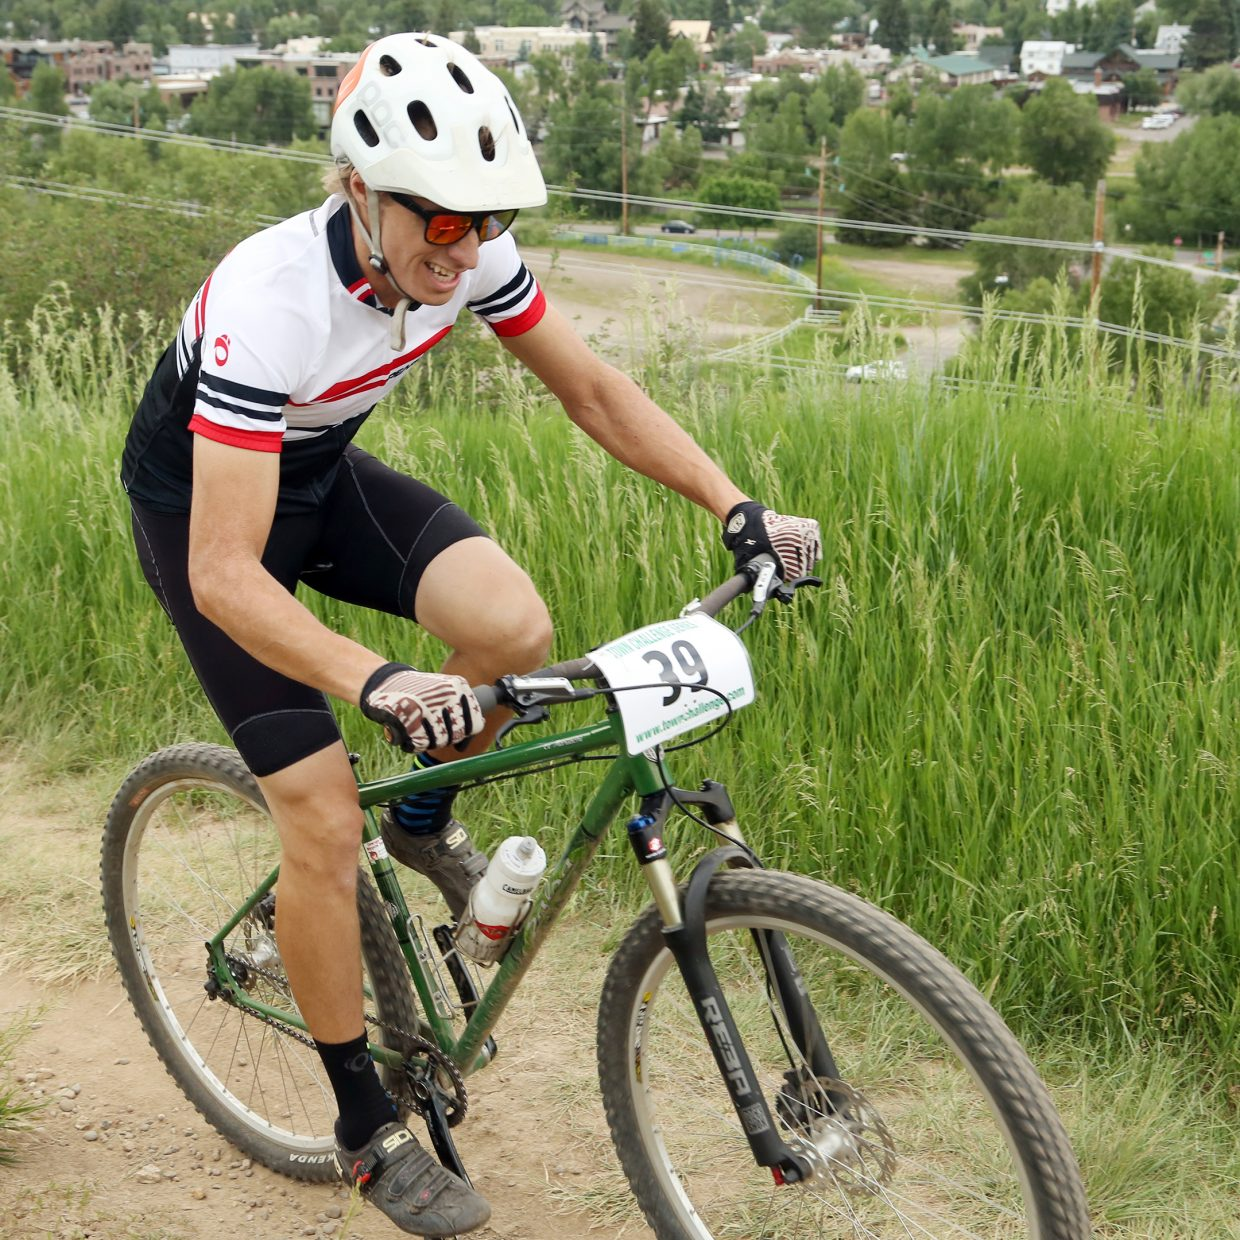 Chad Gruben competes in the men's single speed division of the Emerald Envy XC Town Challenge mountain bike race on June 24, 2015, at Emerald Mountain in Steamboat Springs.